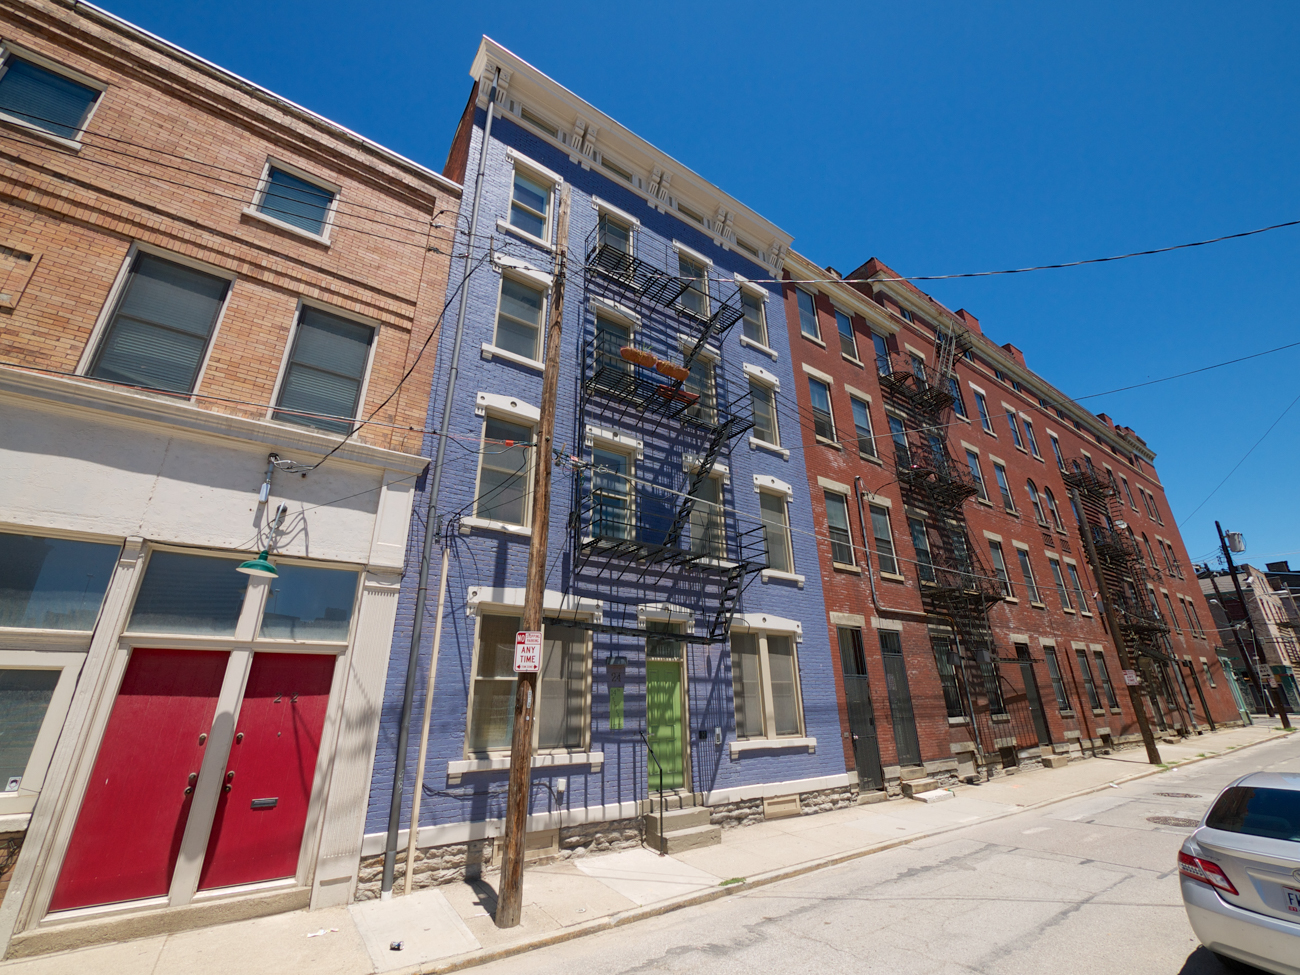 [AFTER] LOCATION: 14th Street, looking northeast between Walnut and Vine Streets at Rodney Alley (Over-the-Rhine) / IMAGE: Travis Estell